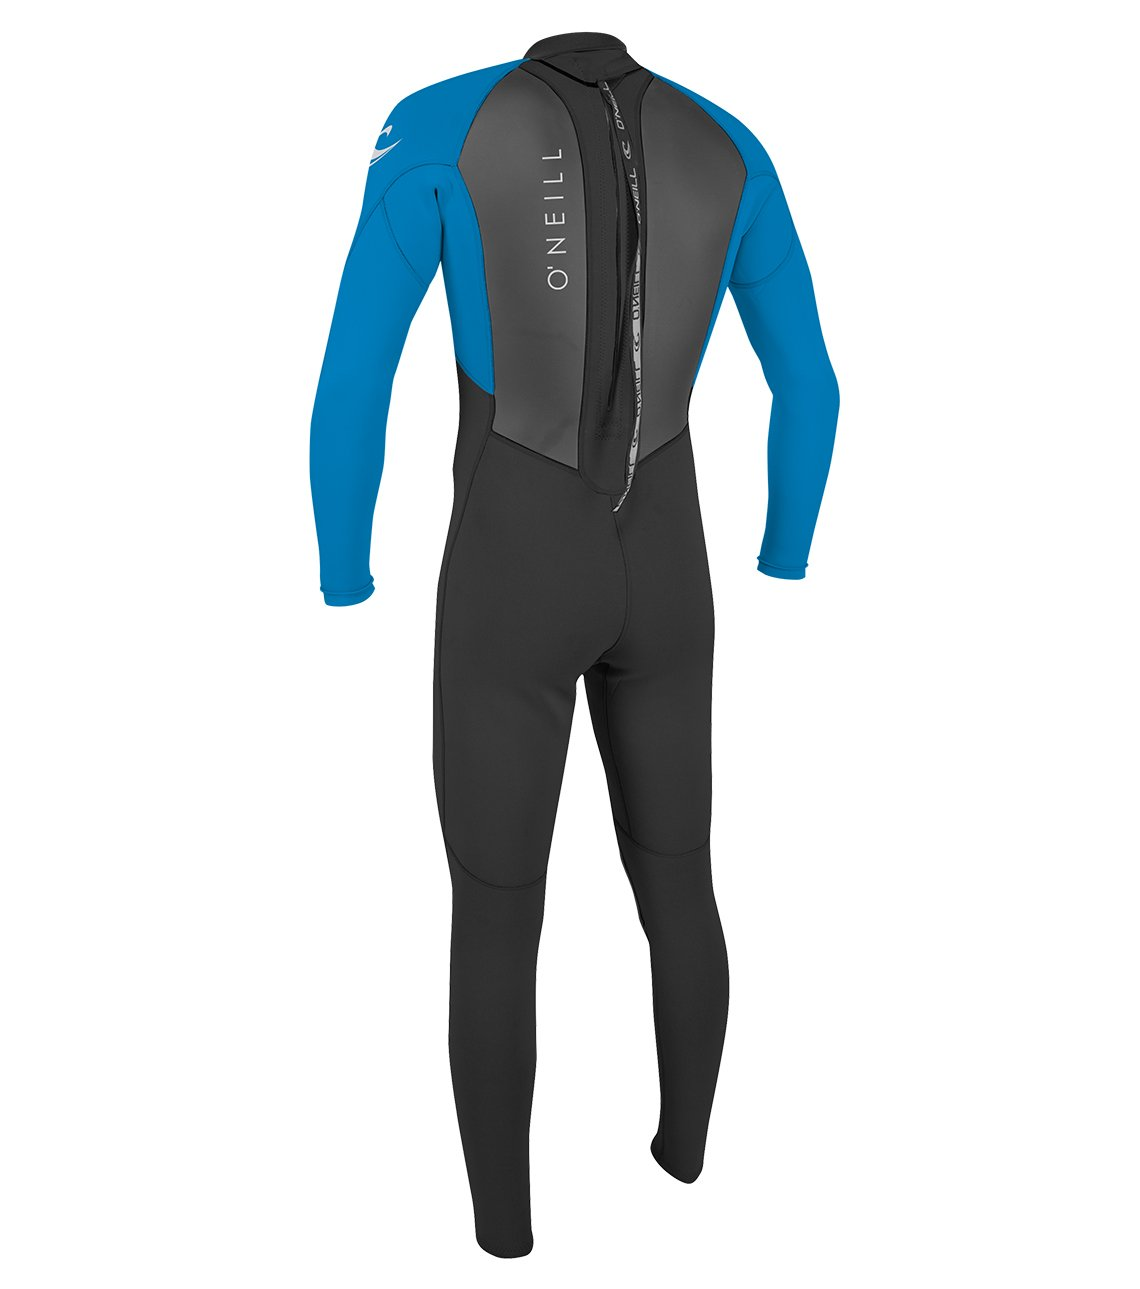 O'Neill Men's Reactor II 3/2mm Back Zip Full Wetsuit, Black/Ocean, Medium by O'Neill Wetsuits (Image #2)